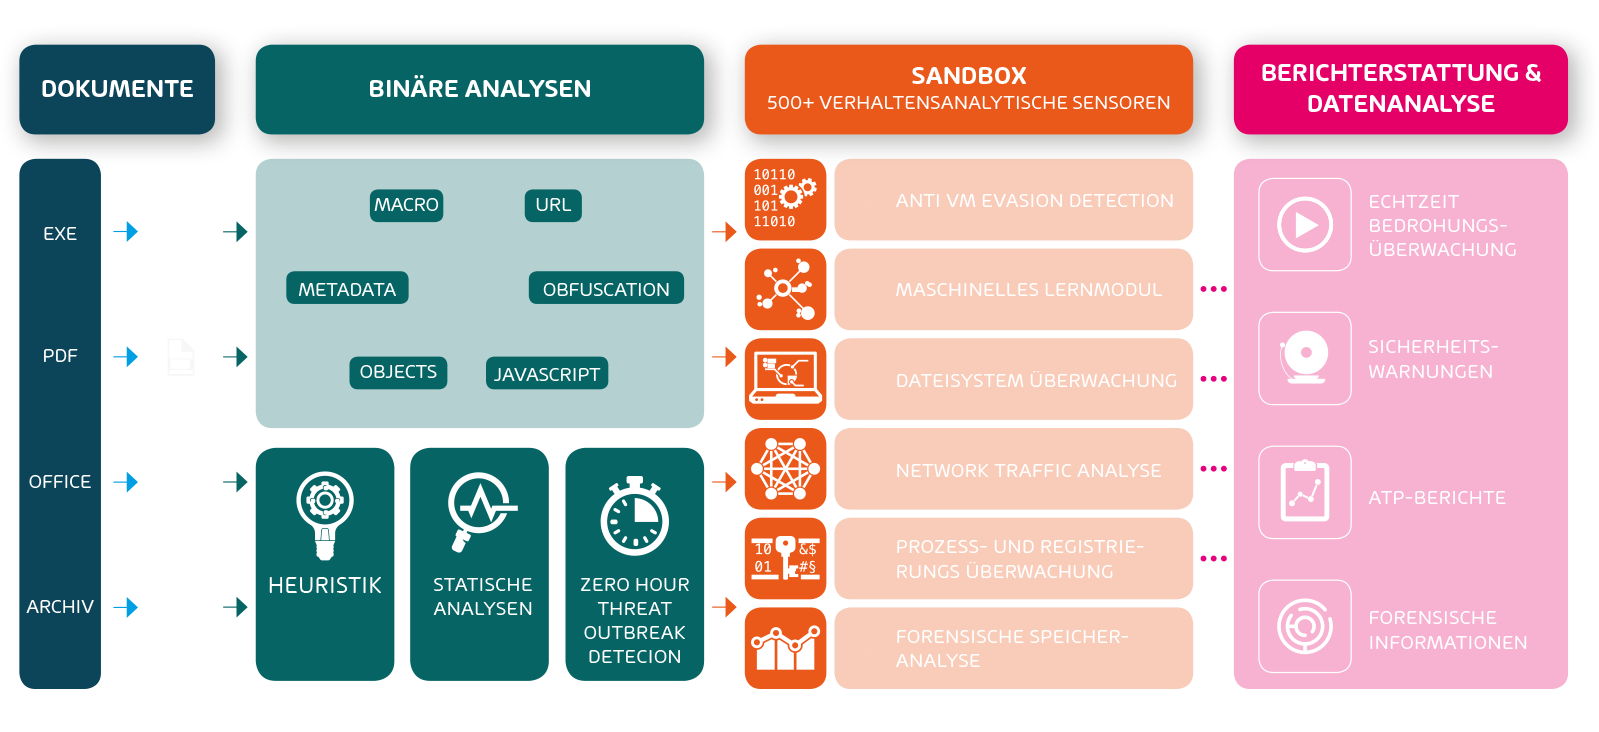 Funktionsweise von Advanced Threat Protection